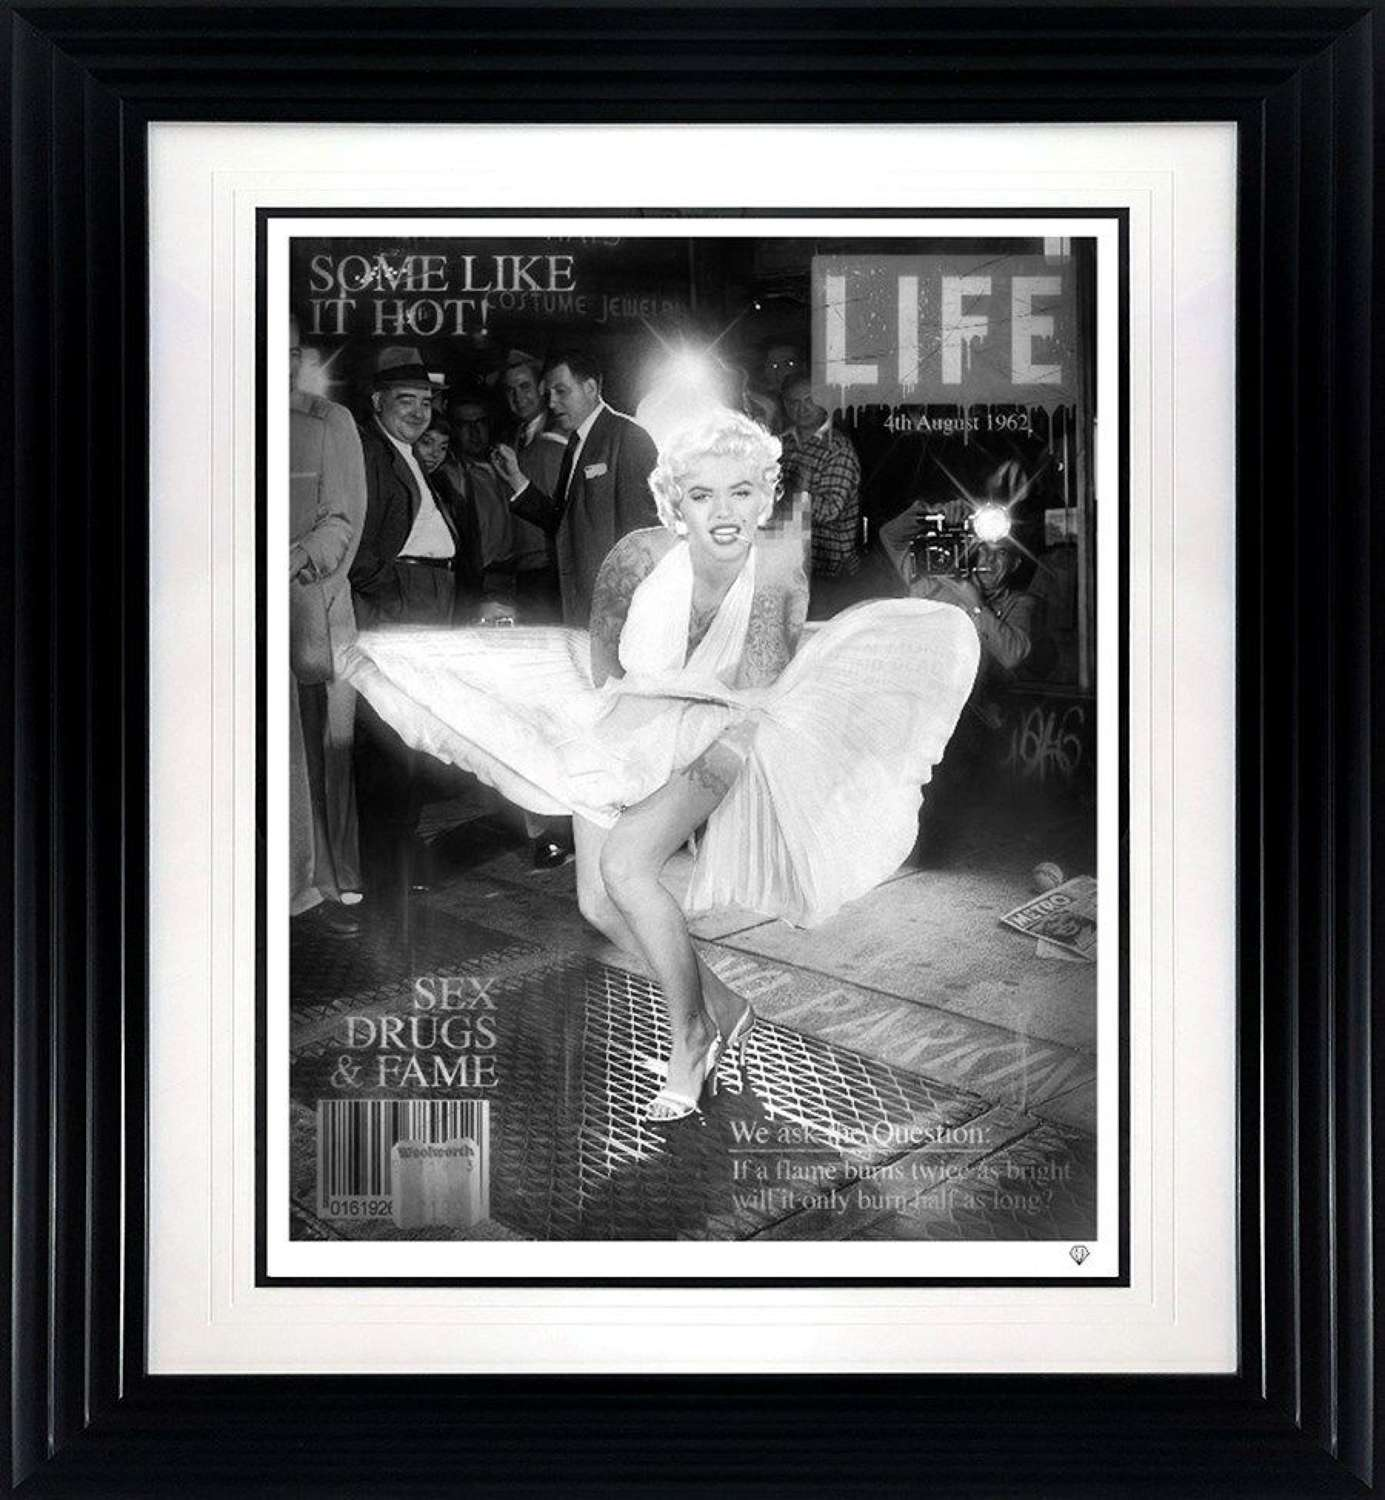 Some Like it Hot - Black and White - Framed Art Print By JJ Adams